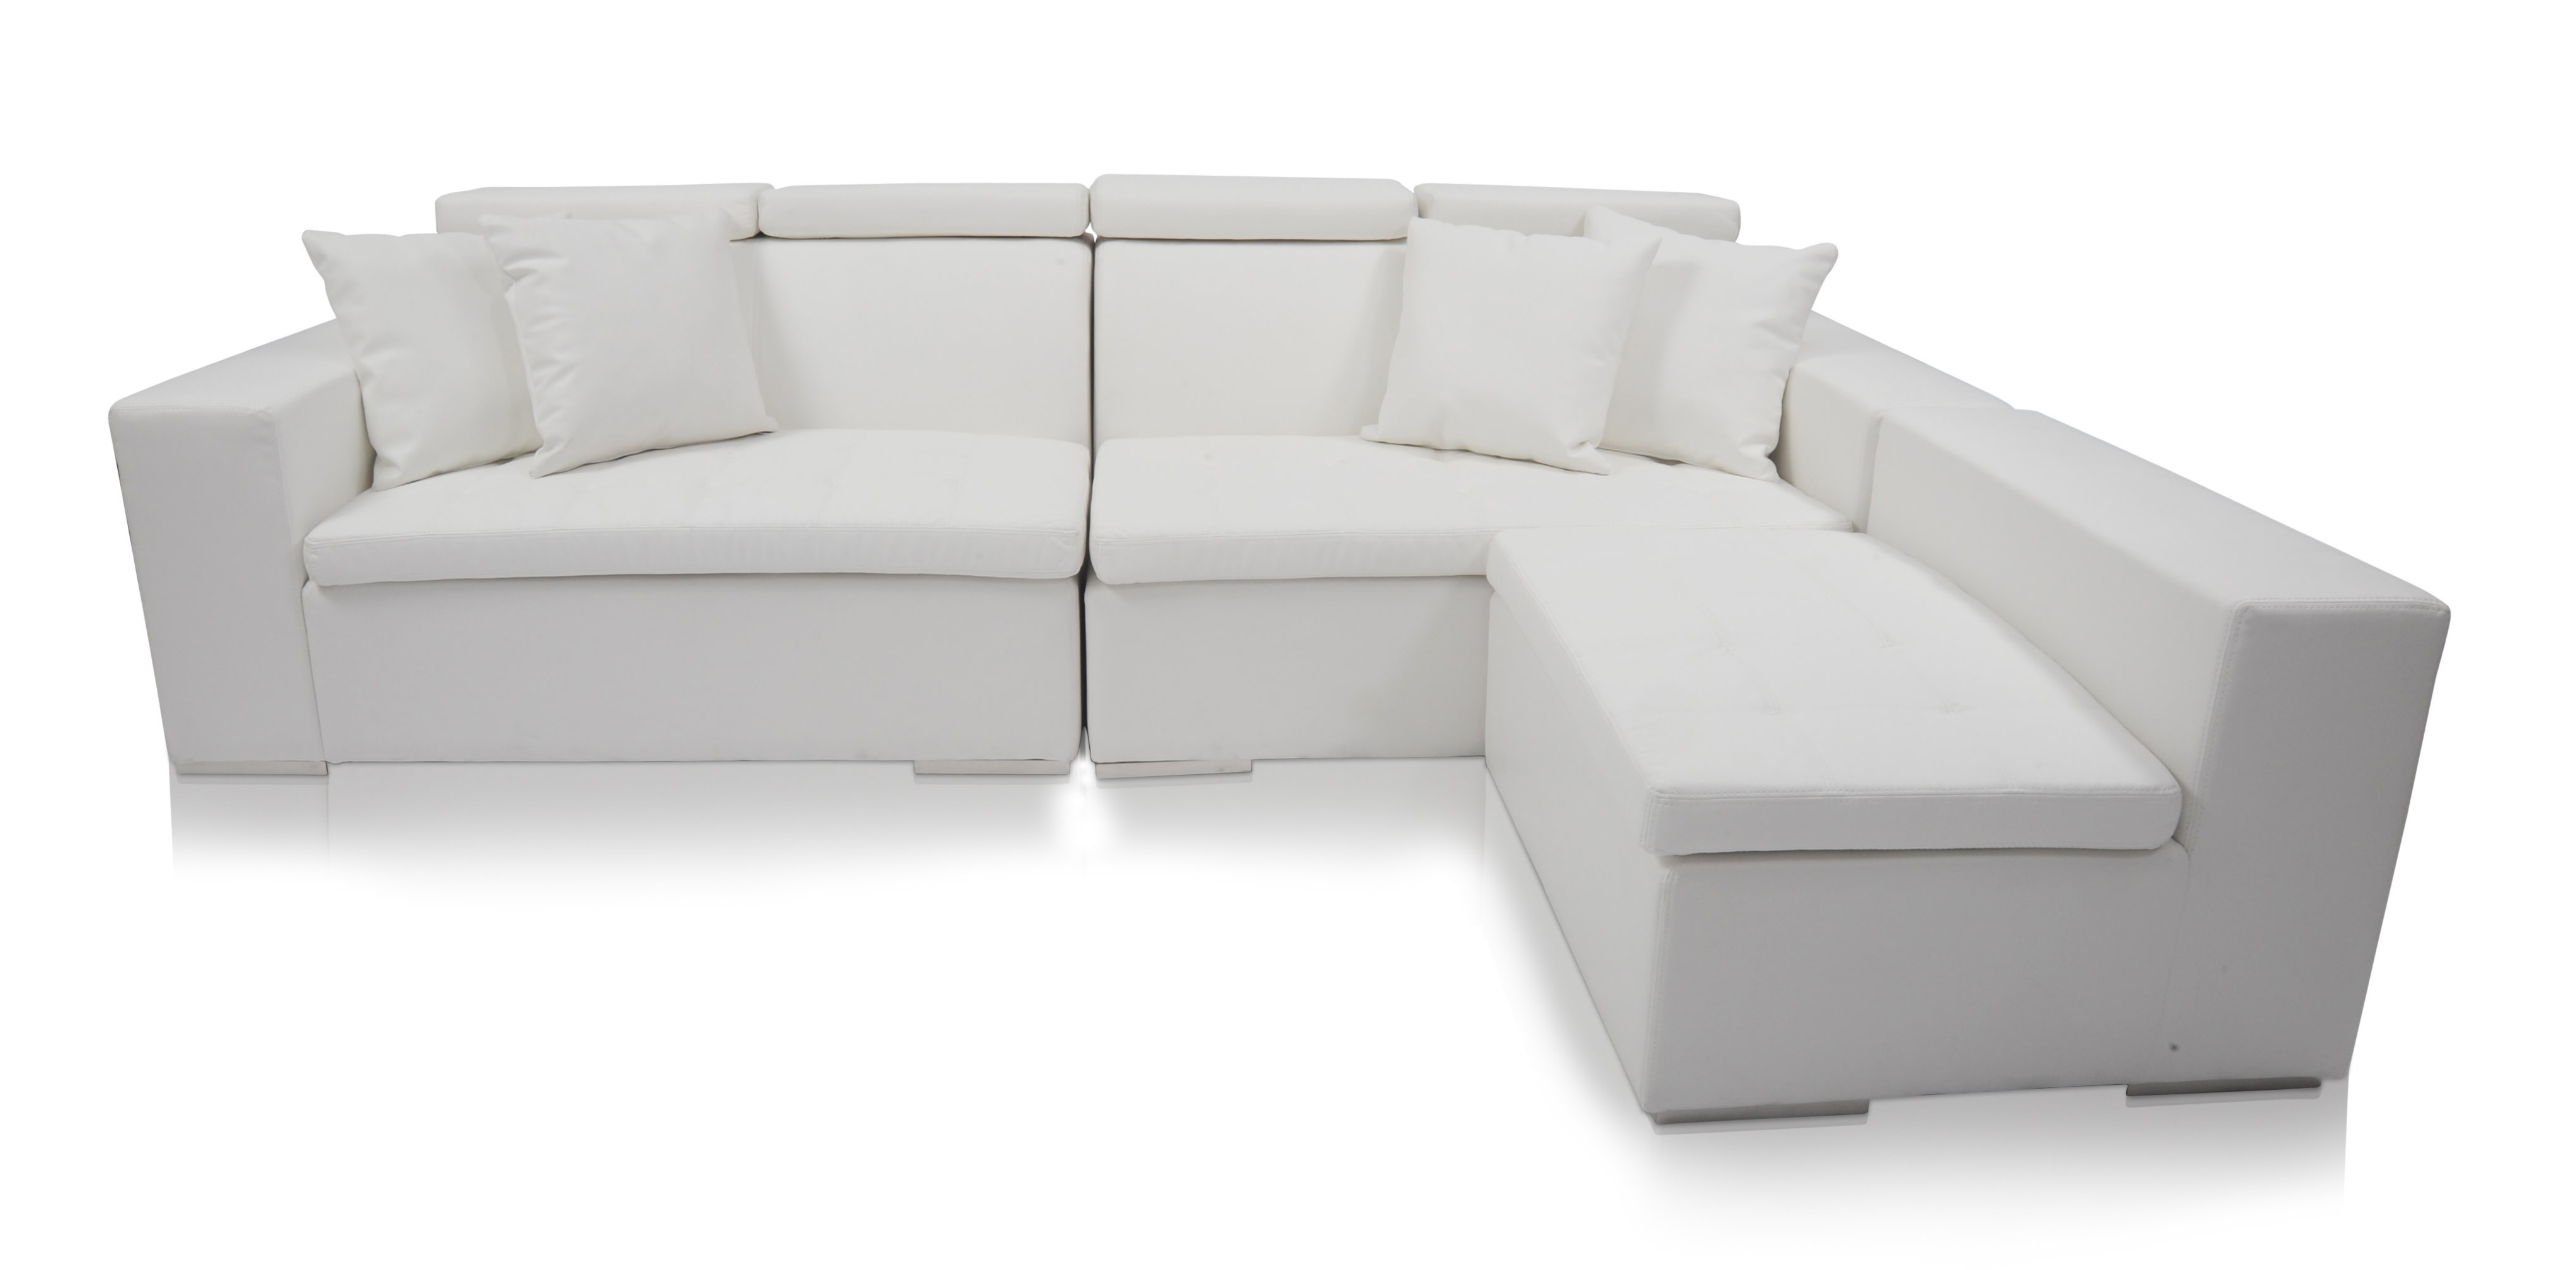 Latest Sectional Modern Sofa Interior White Button Leather Furniture Intended For Sectional Sofas At Bc Canada (View 8 of 20)